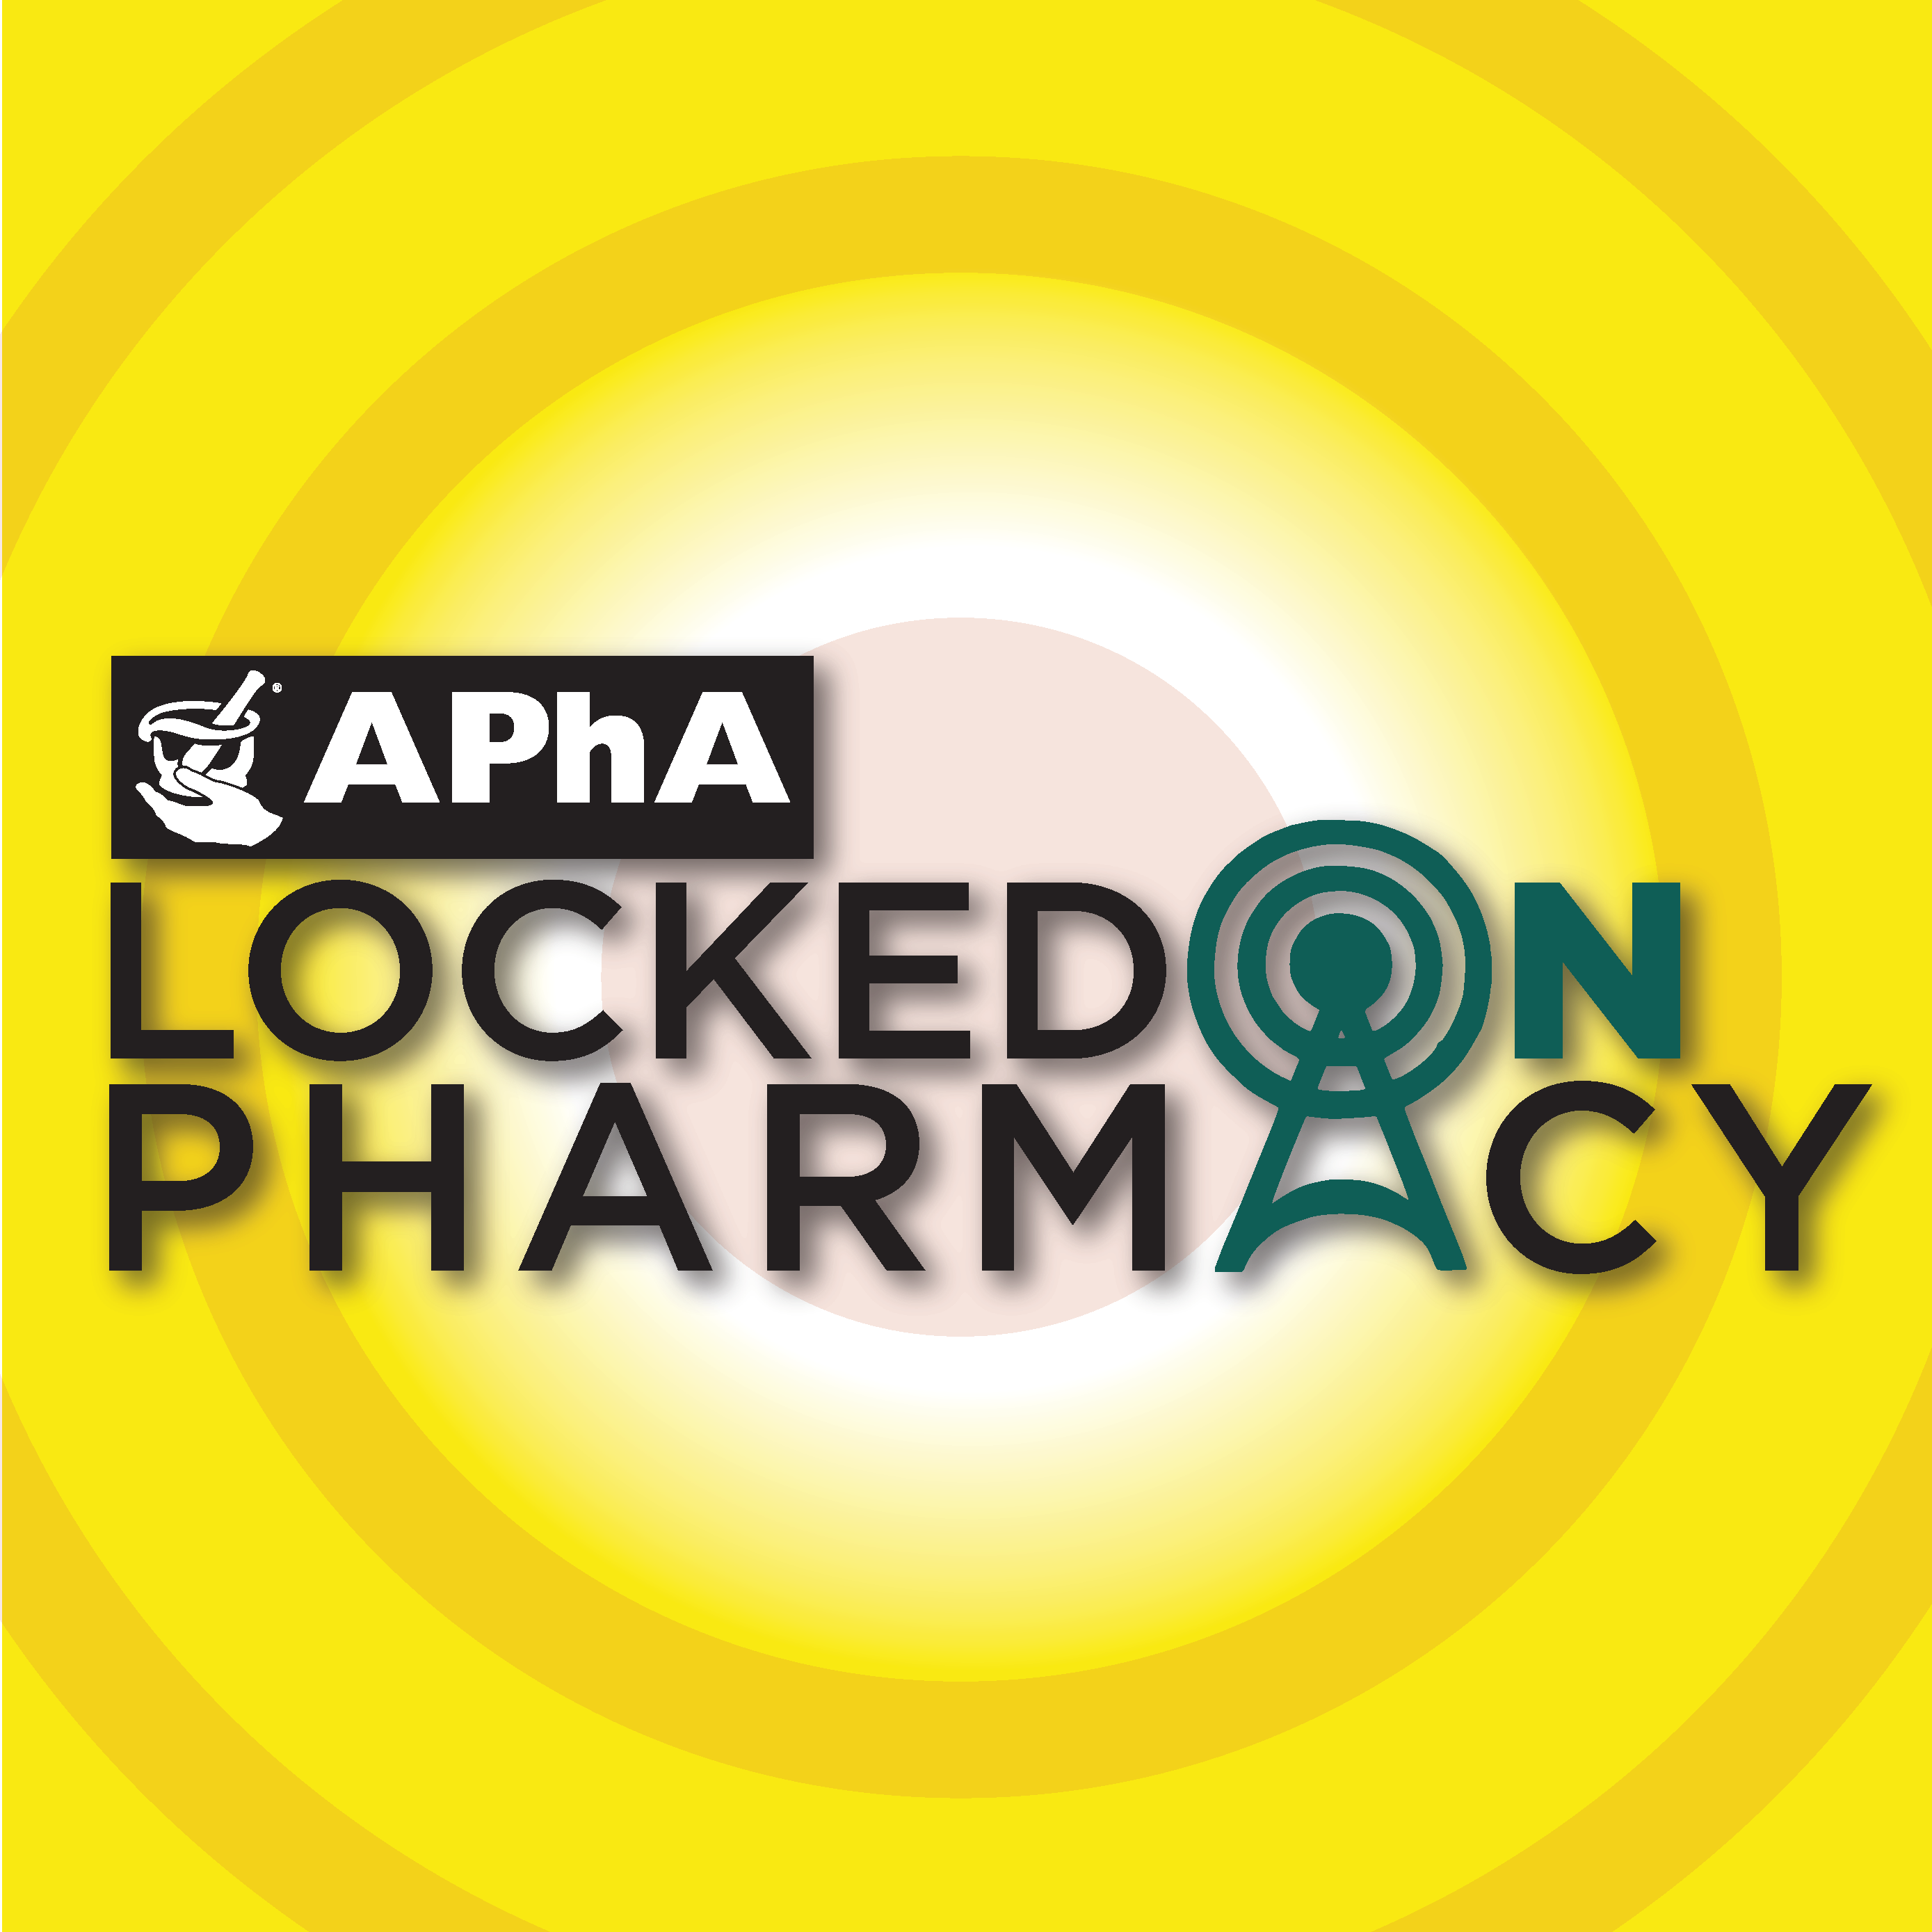 Podcast logo; circles of yellow and white behind the APhA logo and the text Locked on Pharmacy